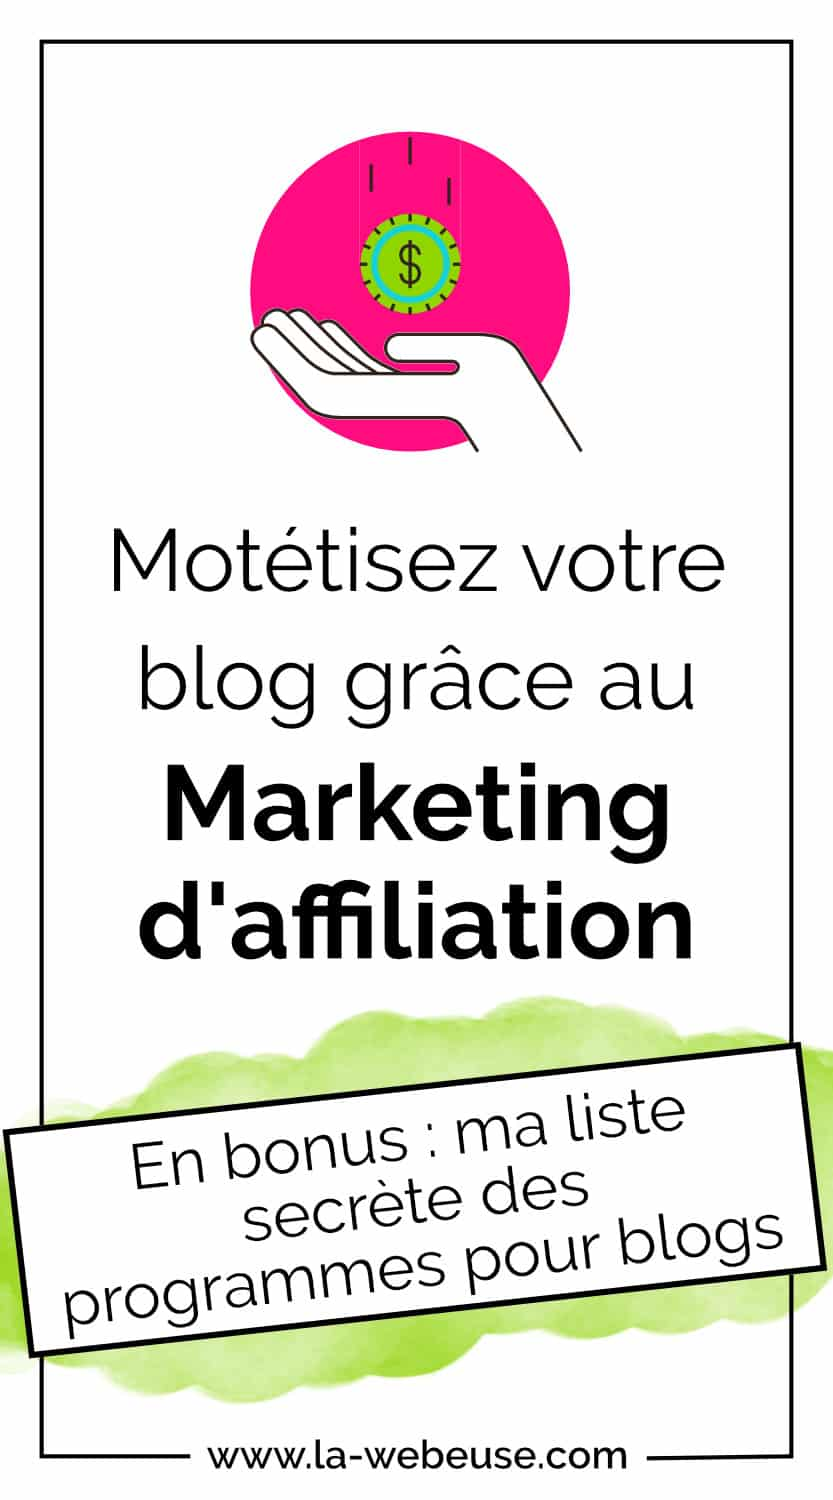 marketing d'affiliation pour monétiser son blog